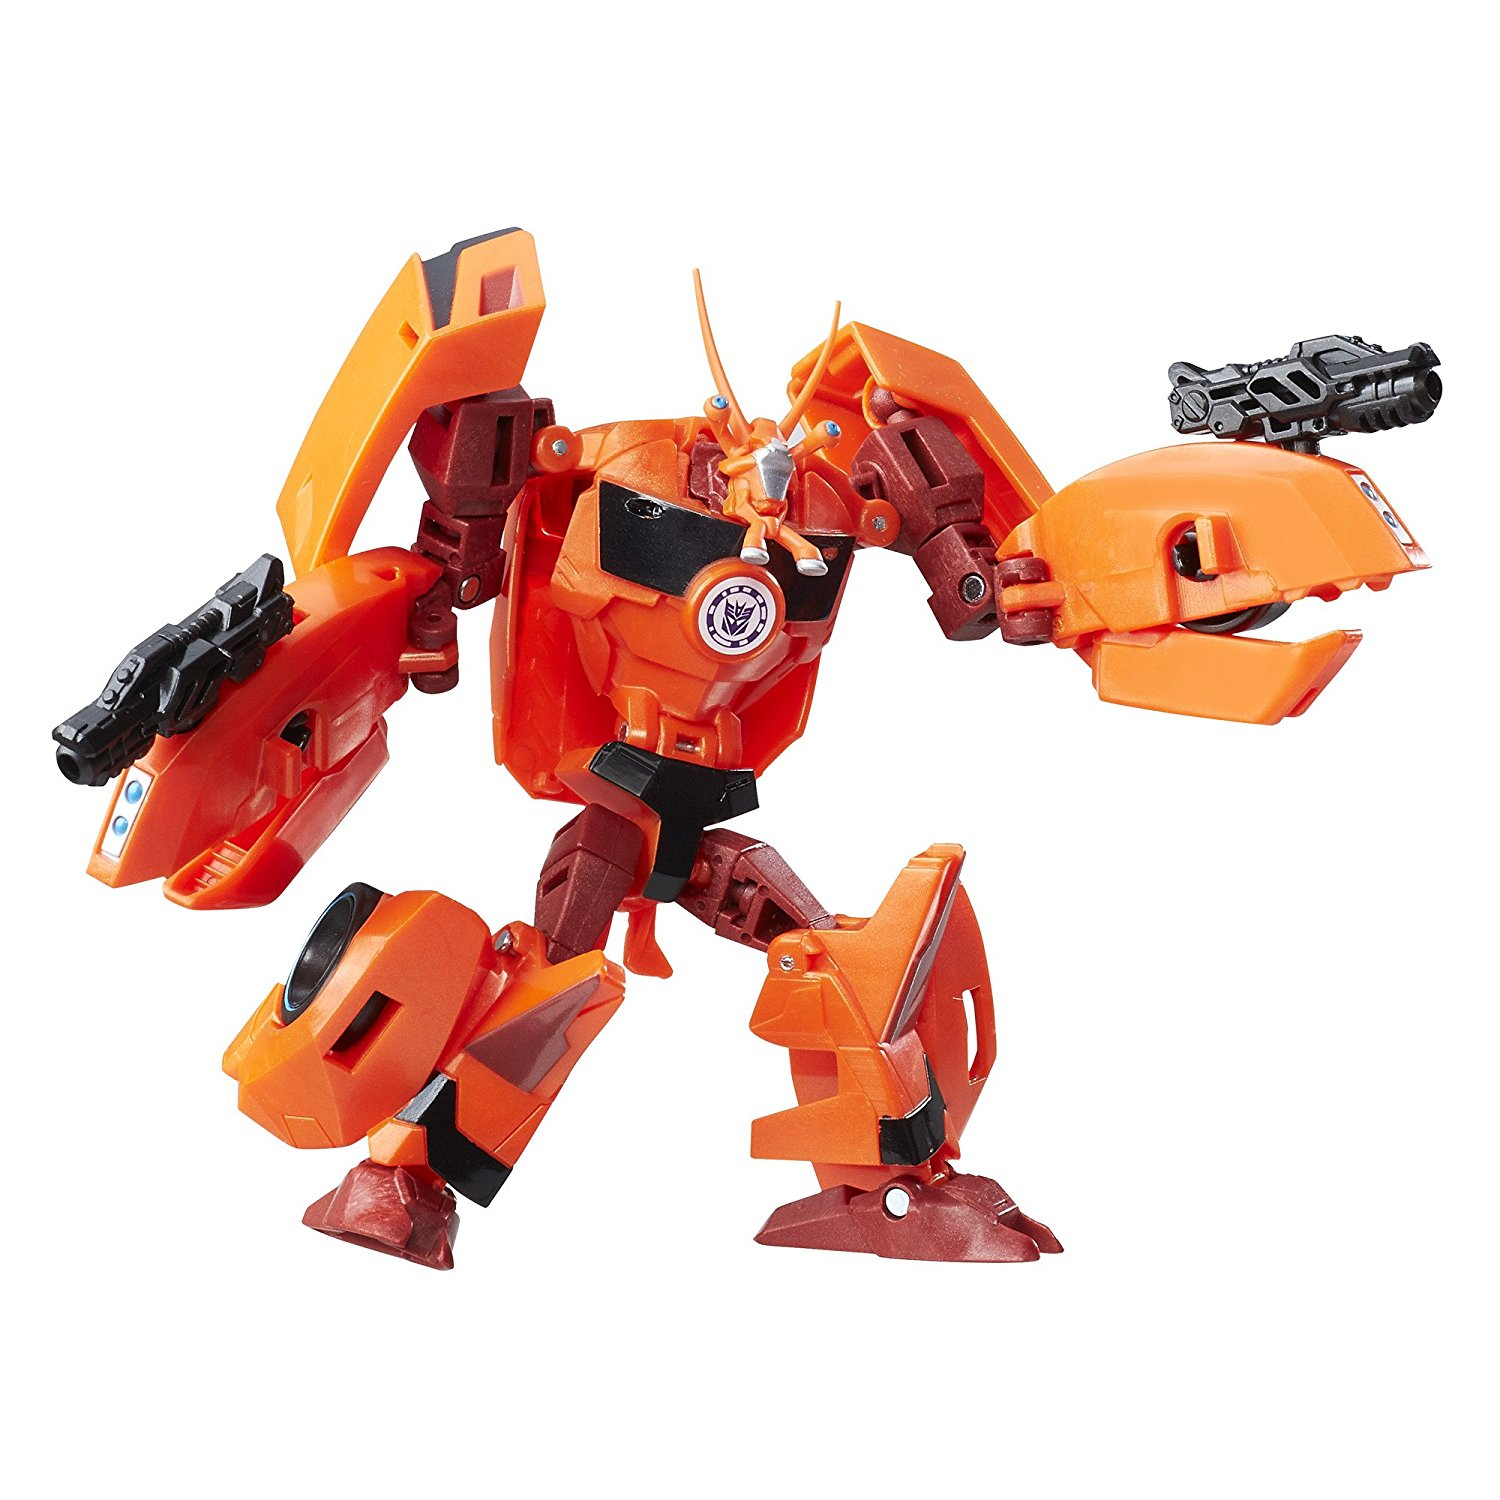 Bisk Transformers Toys Tfw2005